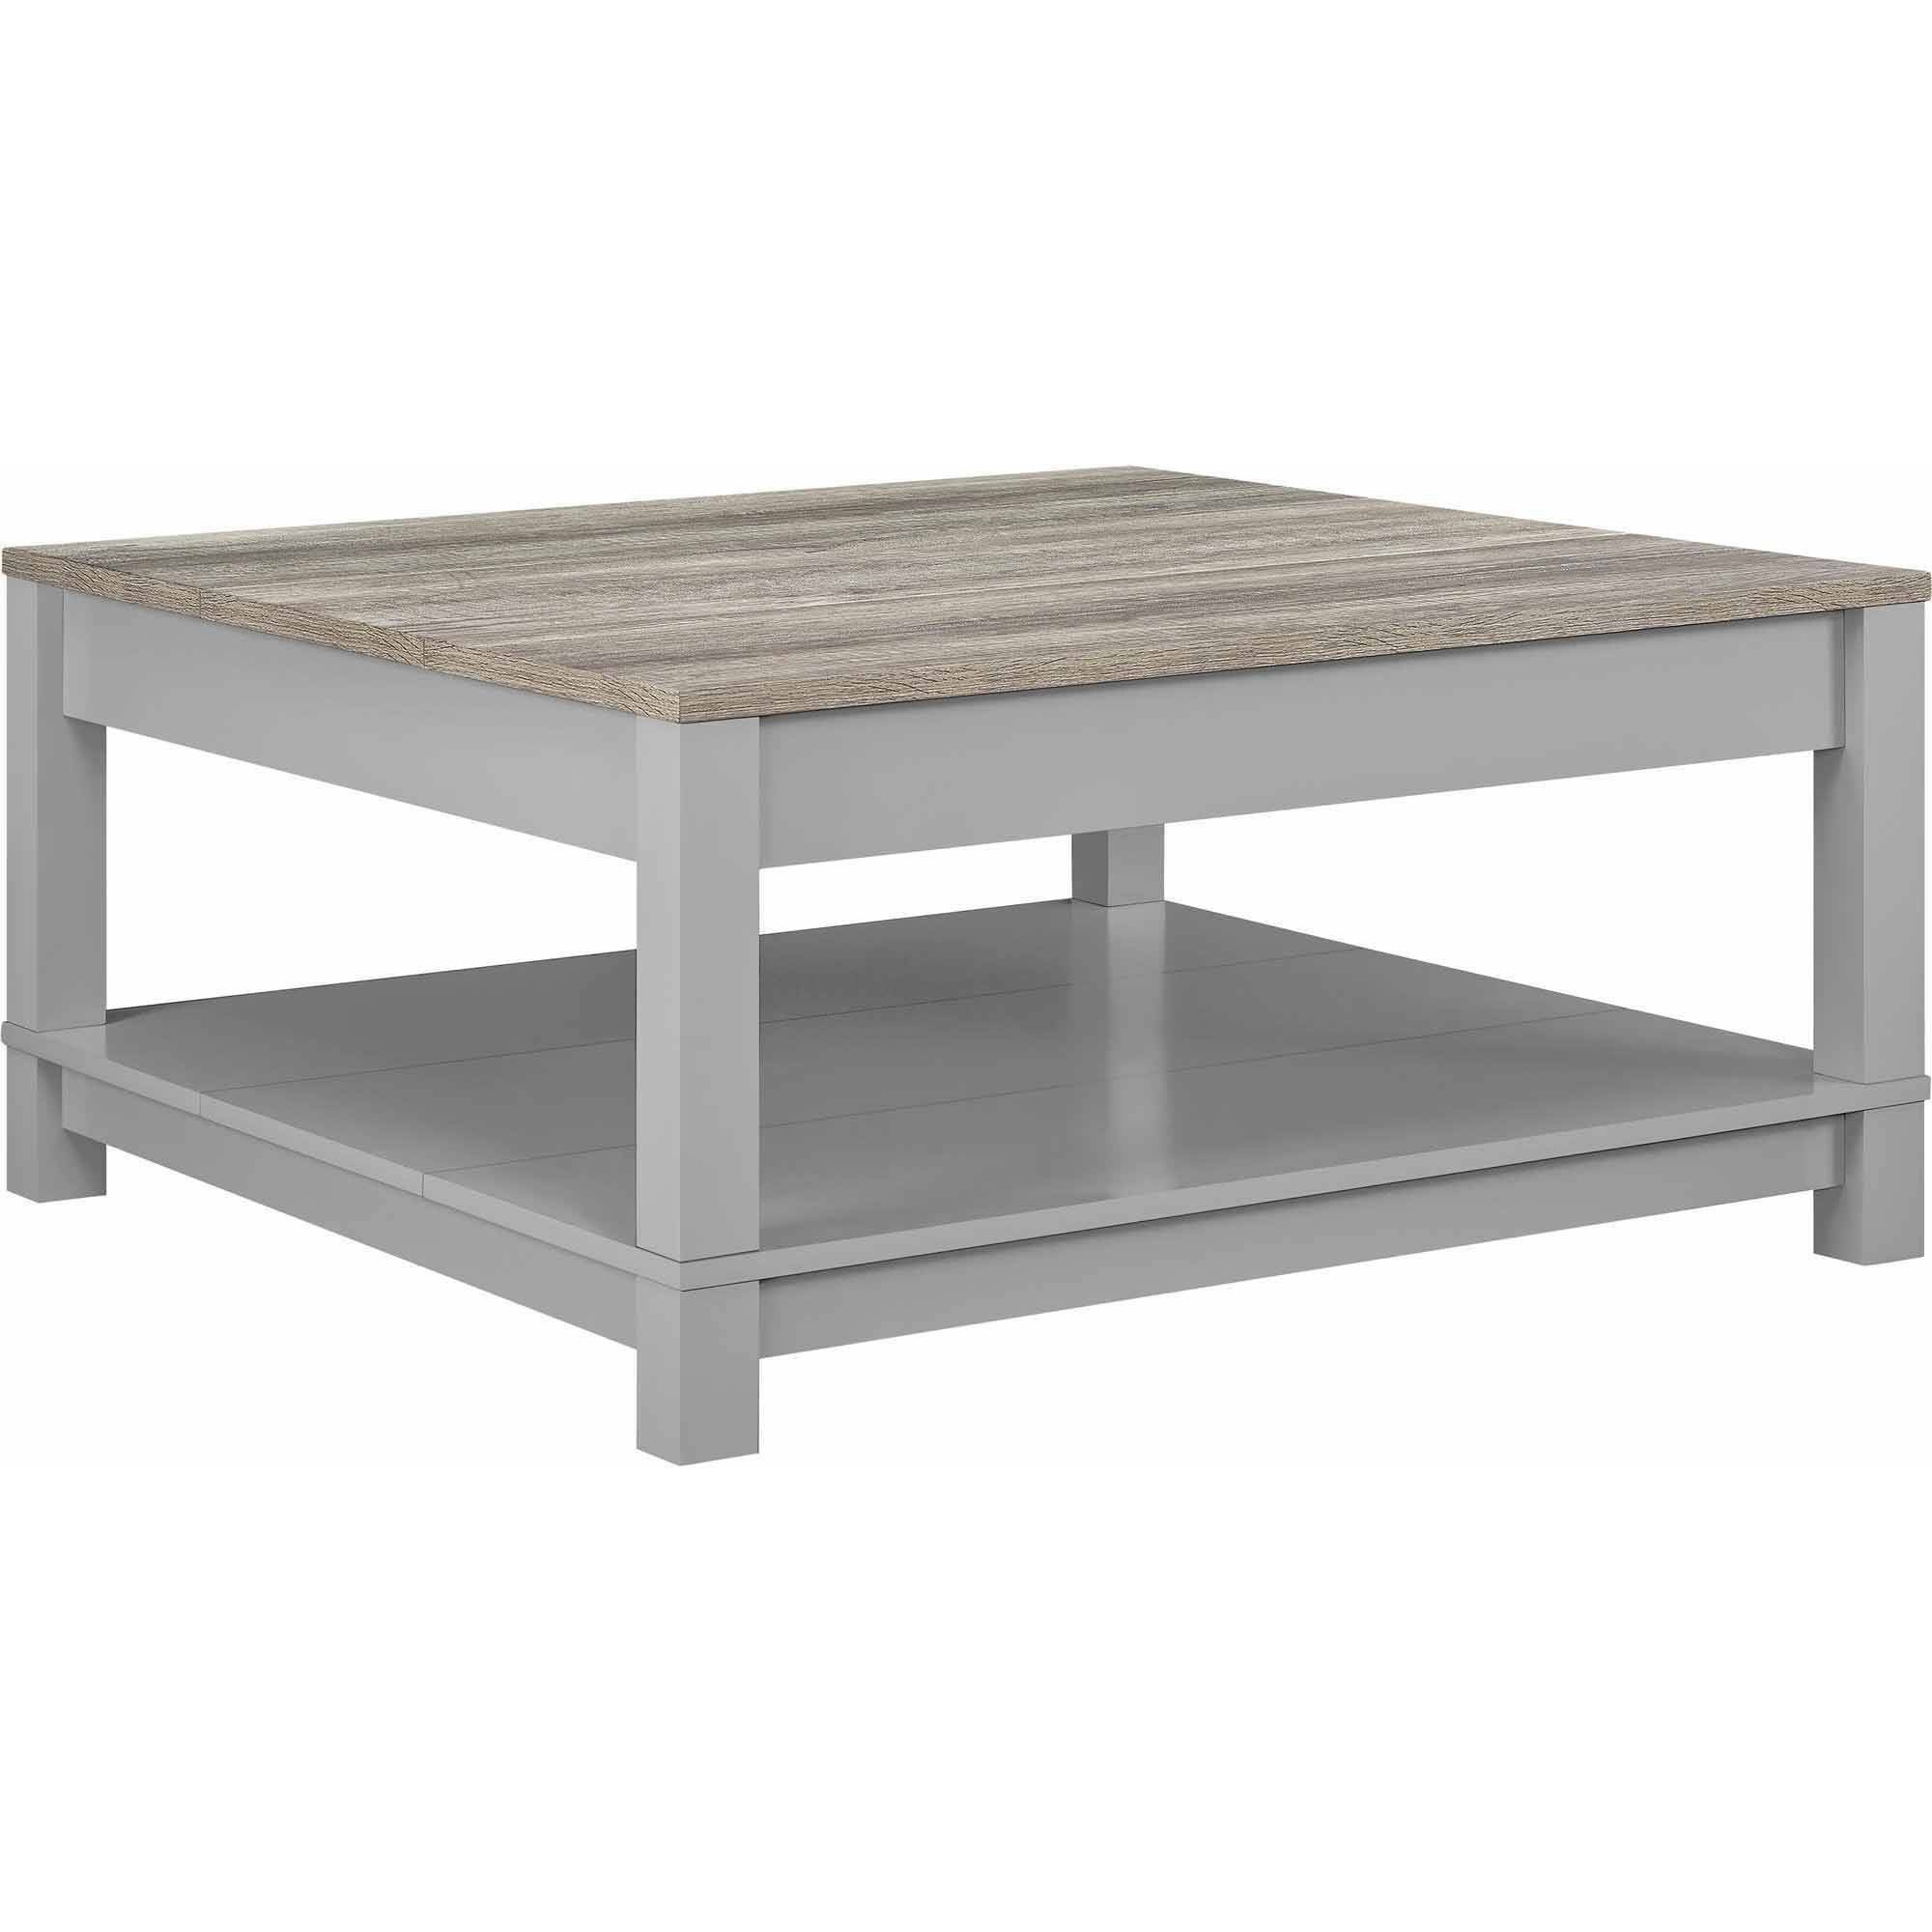 Coffee Table. Fascinating Gray Coffee Table Designs: Outstanding In Grey Coffee Table Sets (Photo 15 of 30)